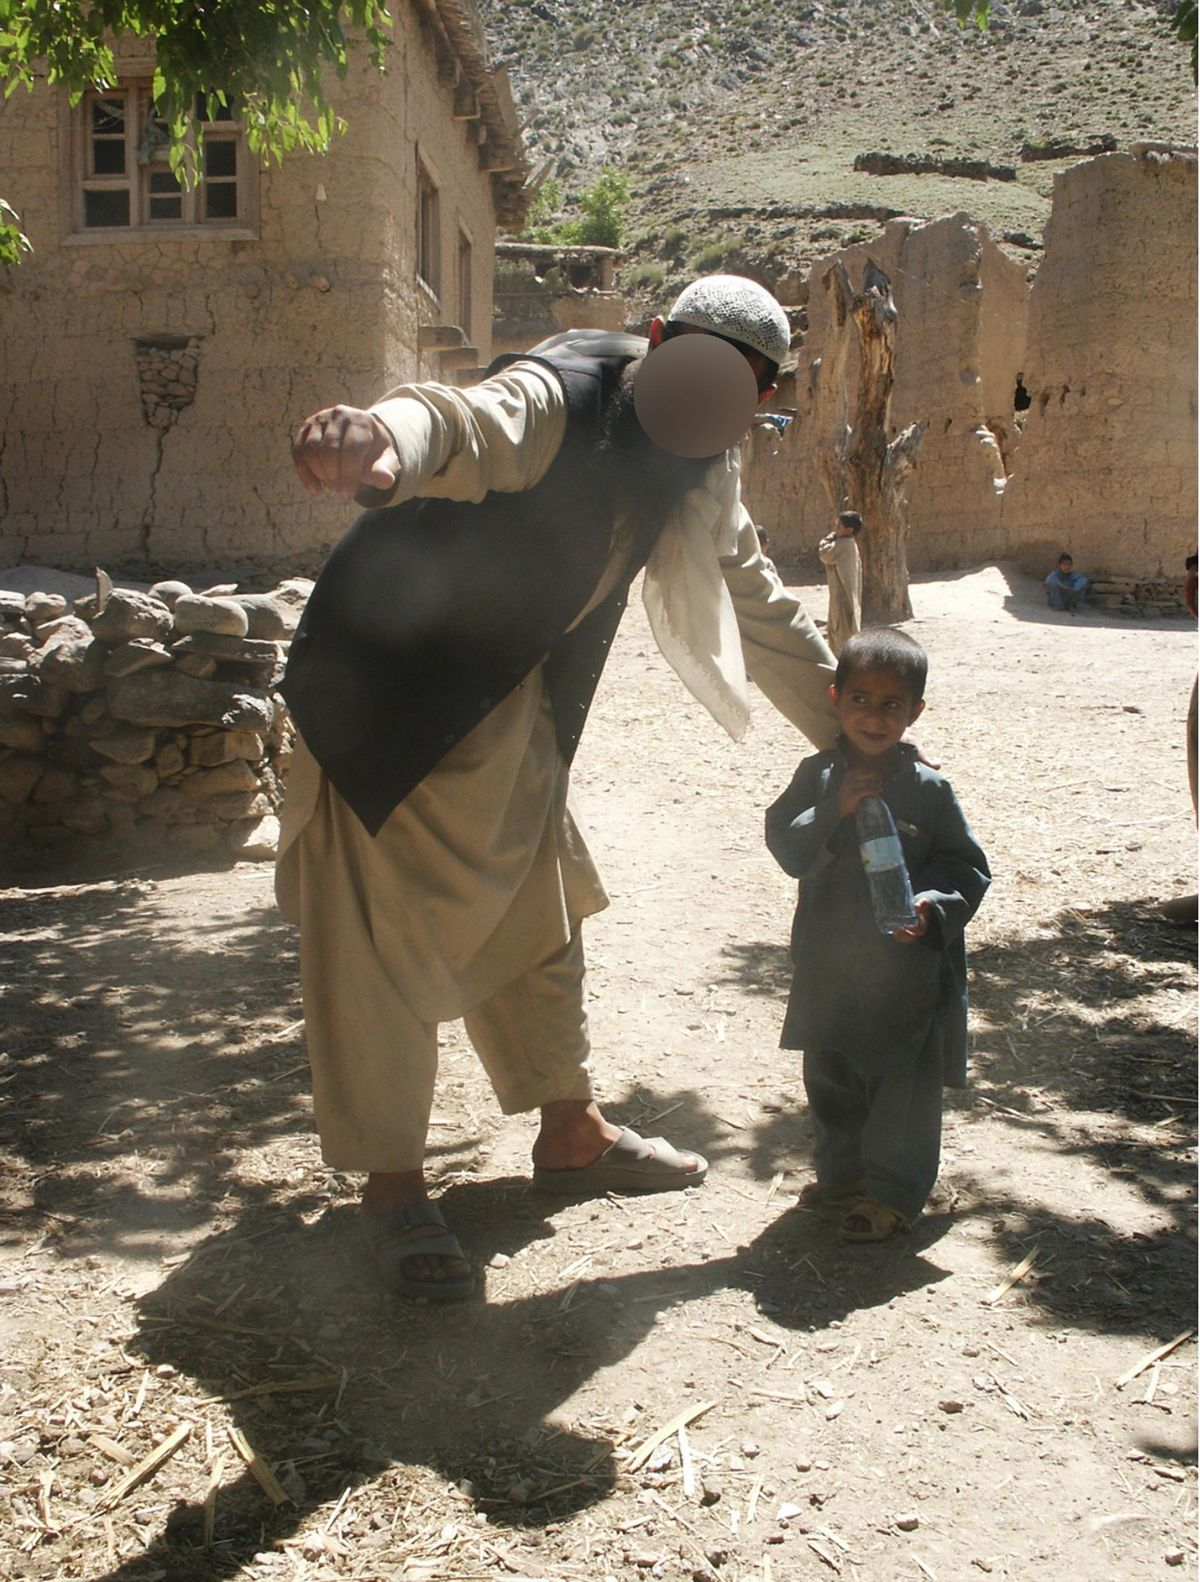 Taroon, a former associate of Eric Eliason, a former Utah National Guard chaplain and now a Brigham Young University professor, helps a child look for his soccer ball in an Afghan village near the Pakistani border during Eliason's deployment in 2004. Taroon was murdered by the Taliban in the late-2000s, and now Eliason and several former military friends are working to help Taroon's wife, daughter, two sons and brother escape Afghanistan.